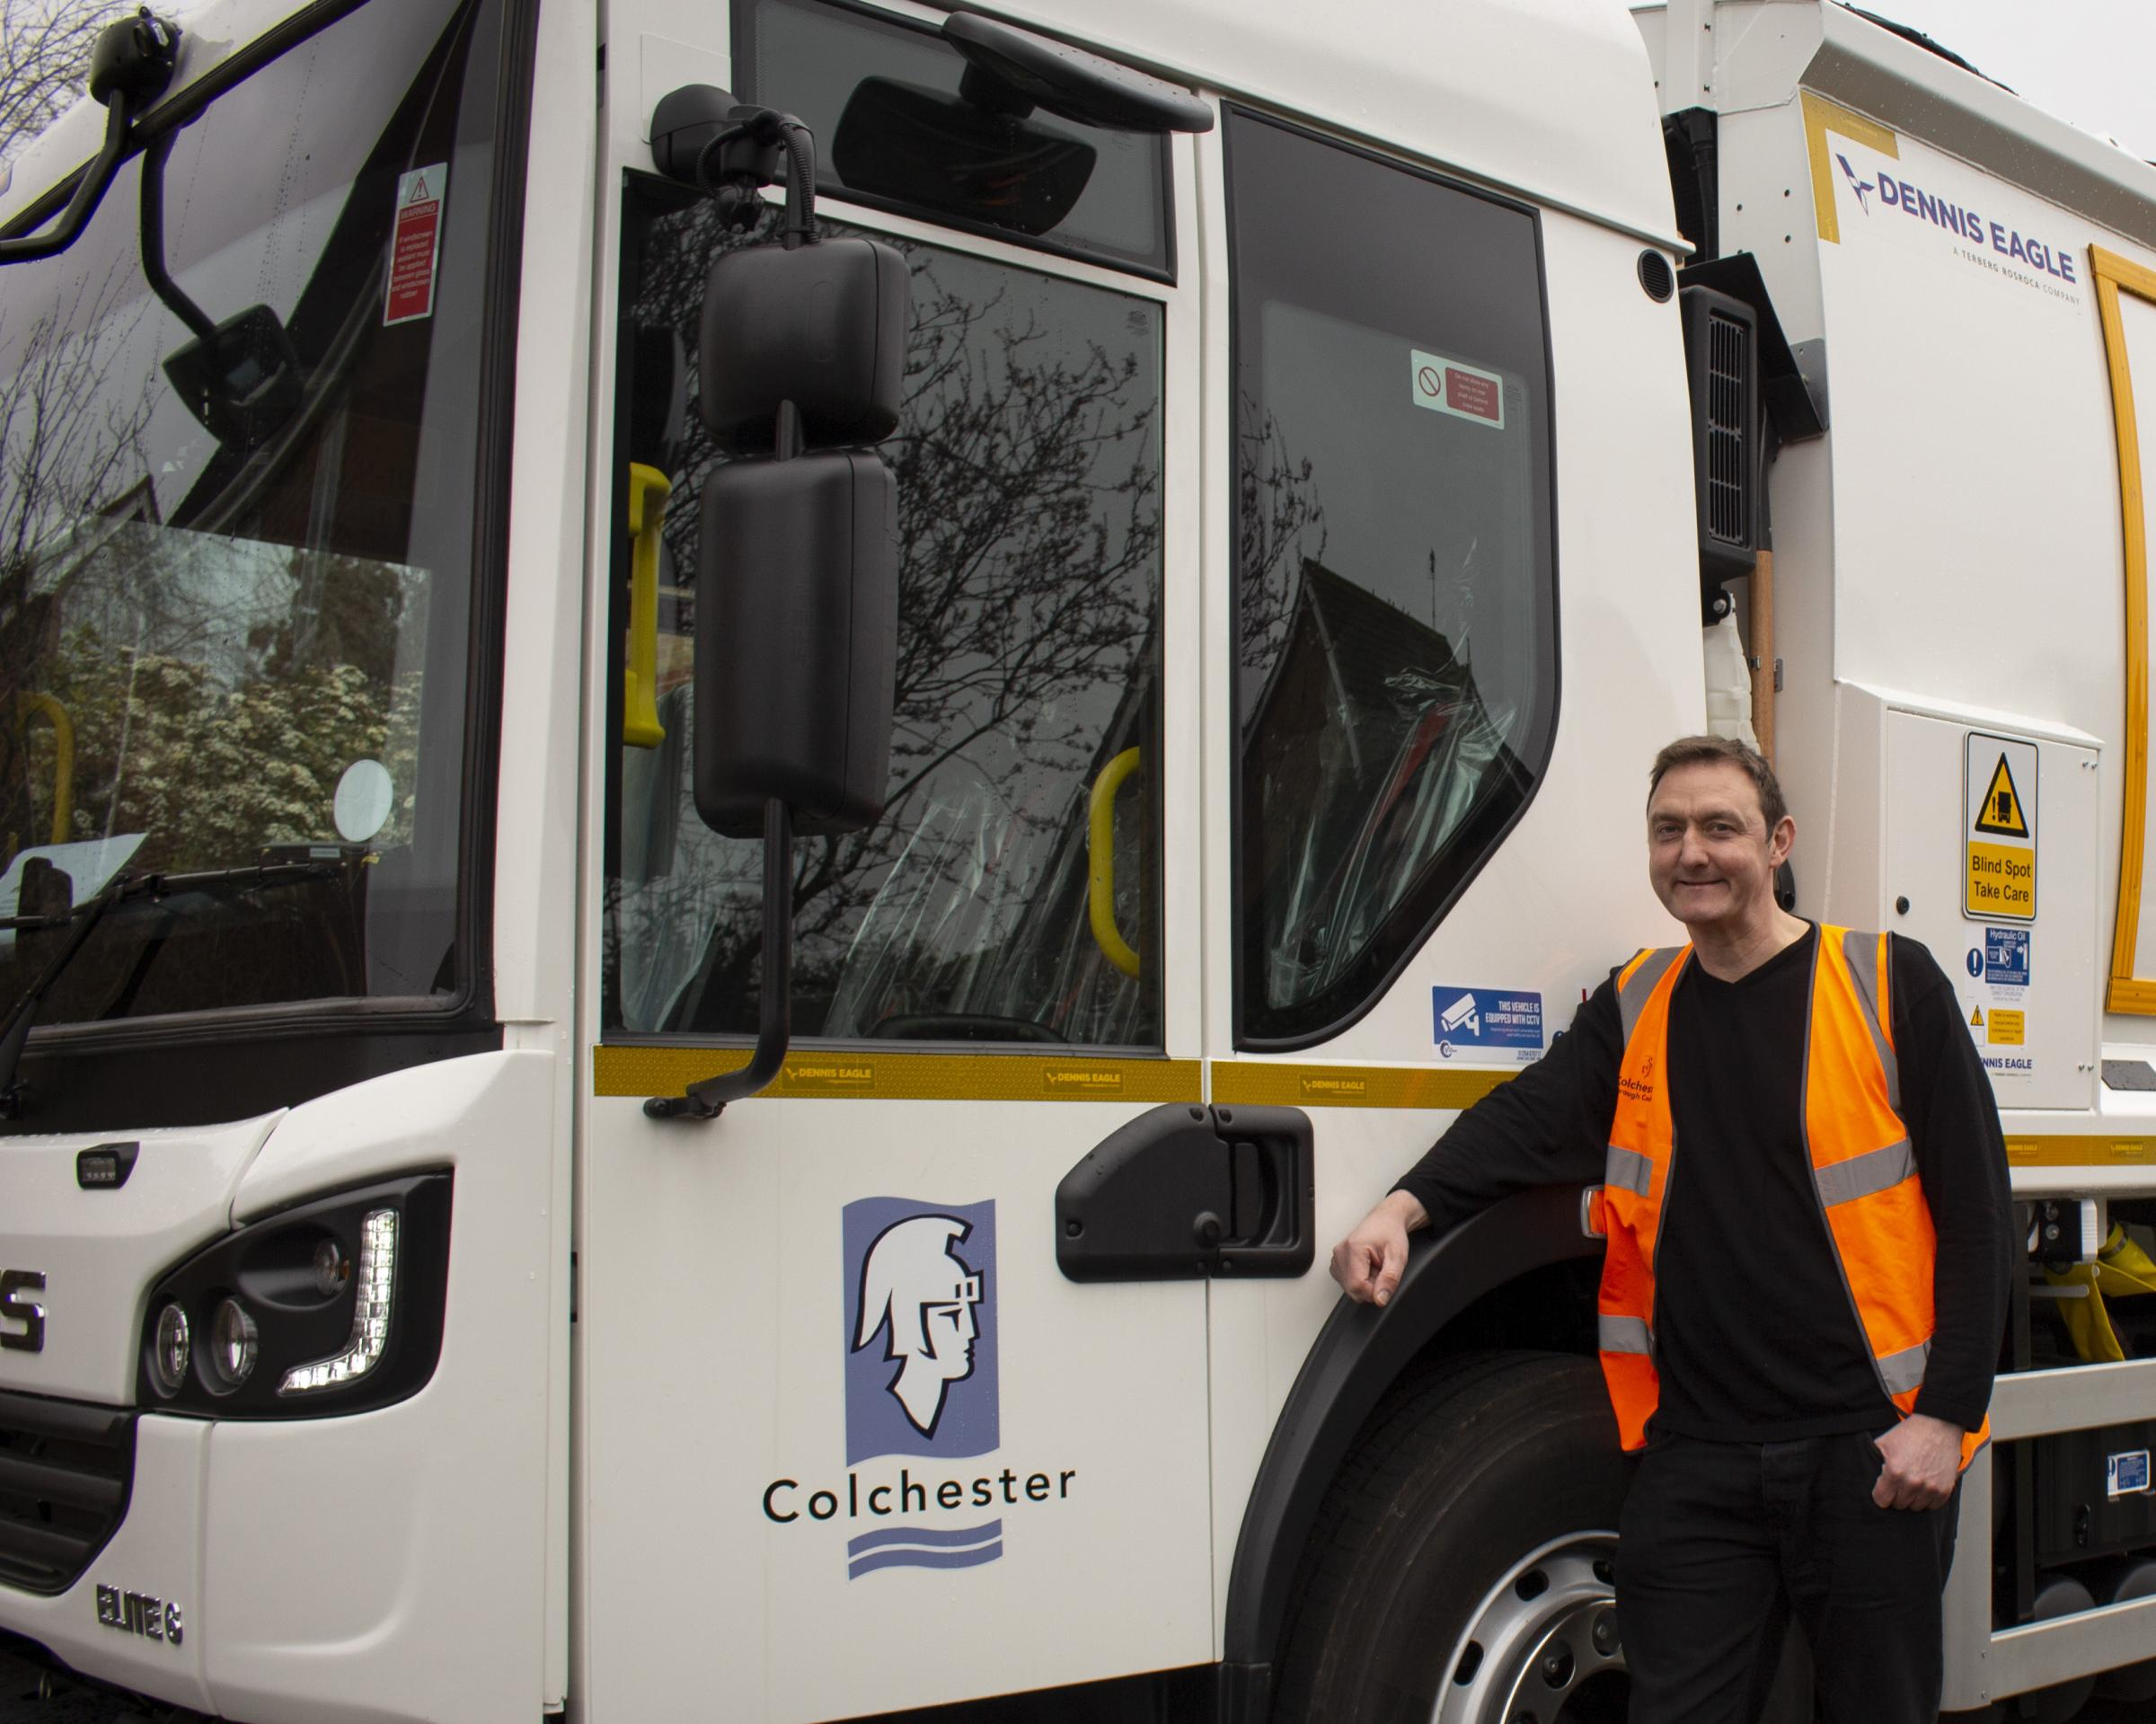 Innovation - Martin Goss alongside one of the new recycling and rubbish collection vehicles